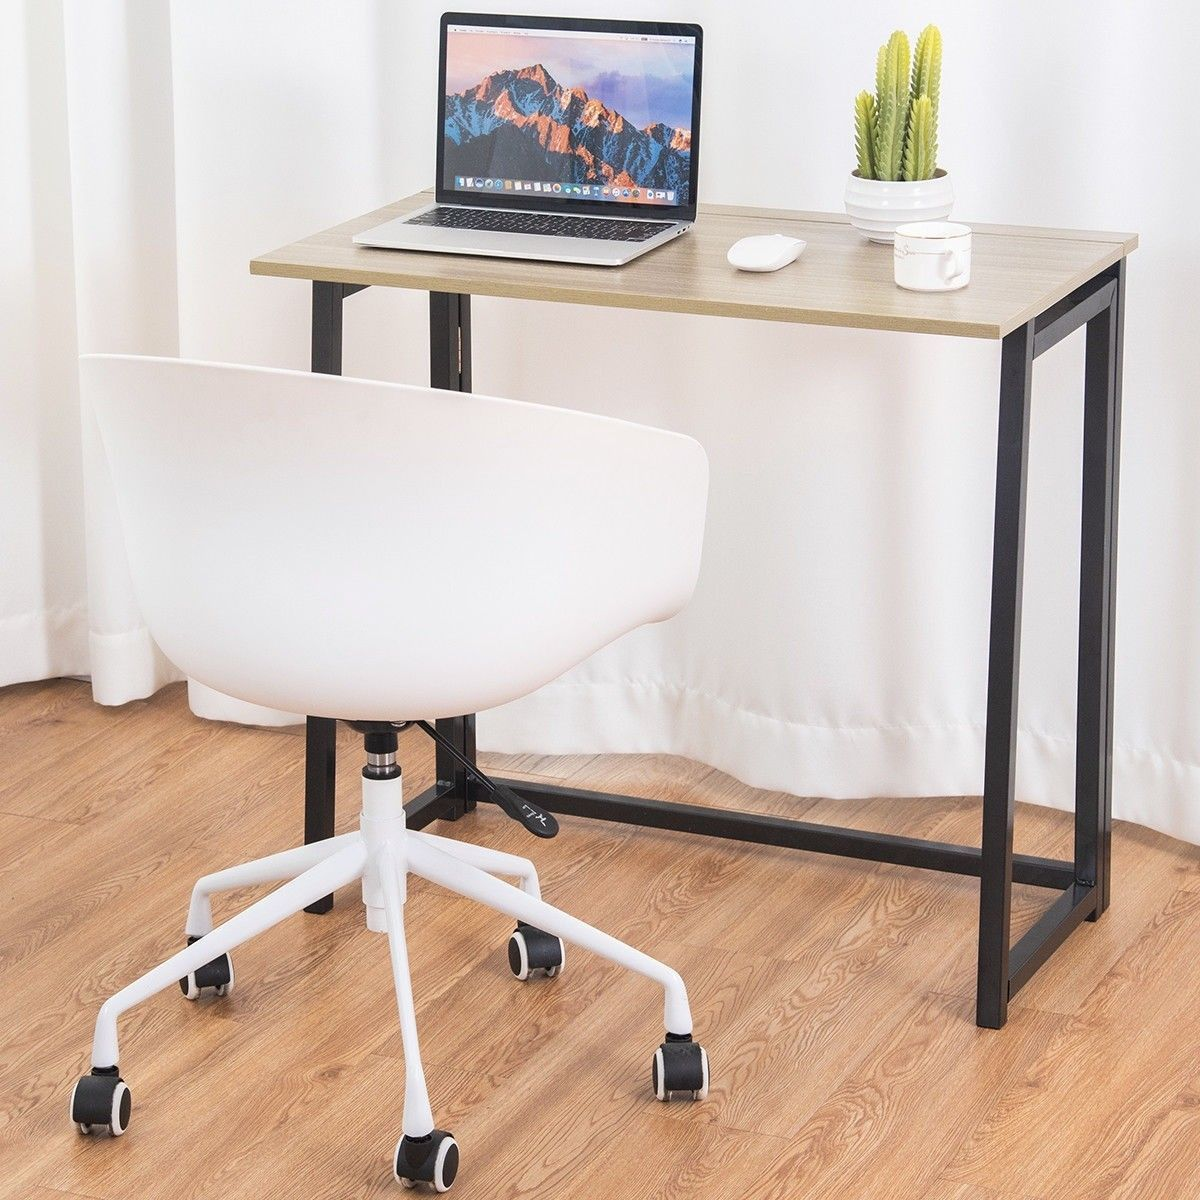 Compact Computer Desks Come In A Wide Assortment Of Designs Small Computer Desk Folding Computer Desk Computer Desk